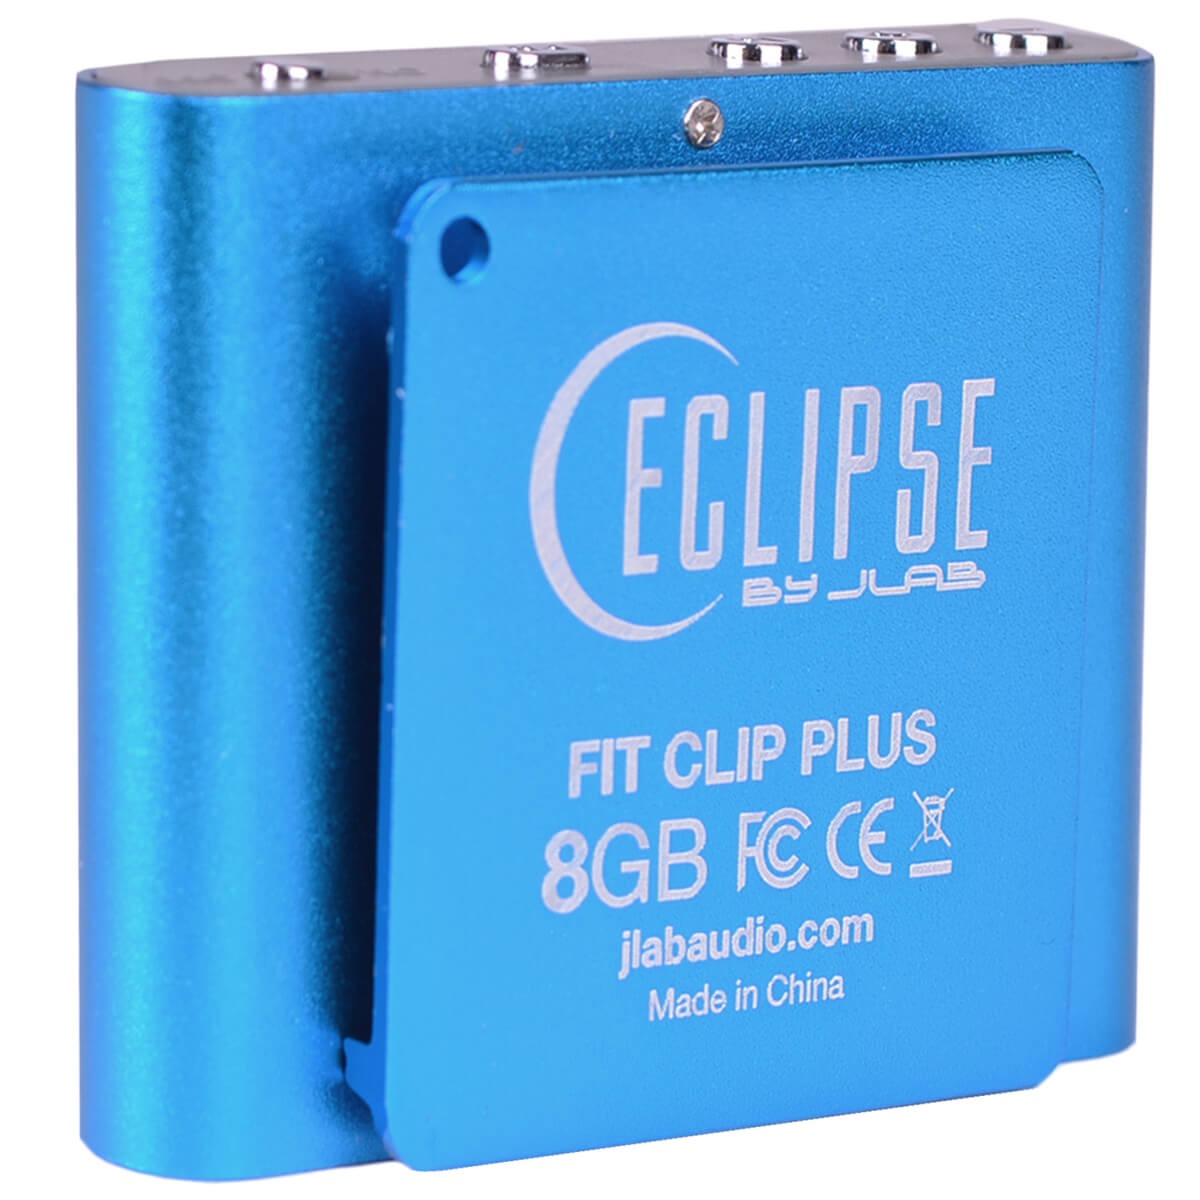 Eclipse-Fit-Clip-Plus-8GB-1-8-034-LCD-MP3-Digital-Music-Video-Player-amp-Pedometer thumbnail 4